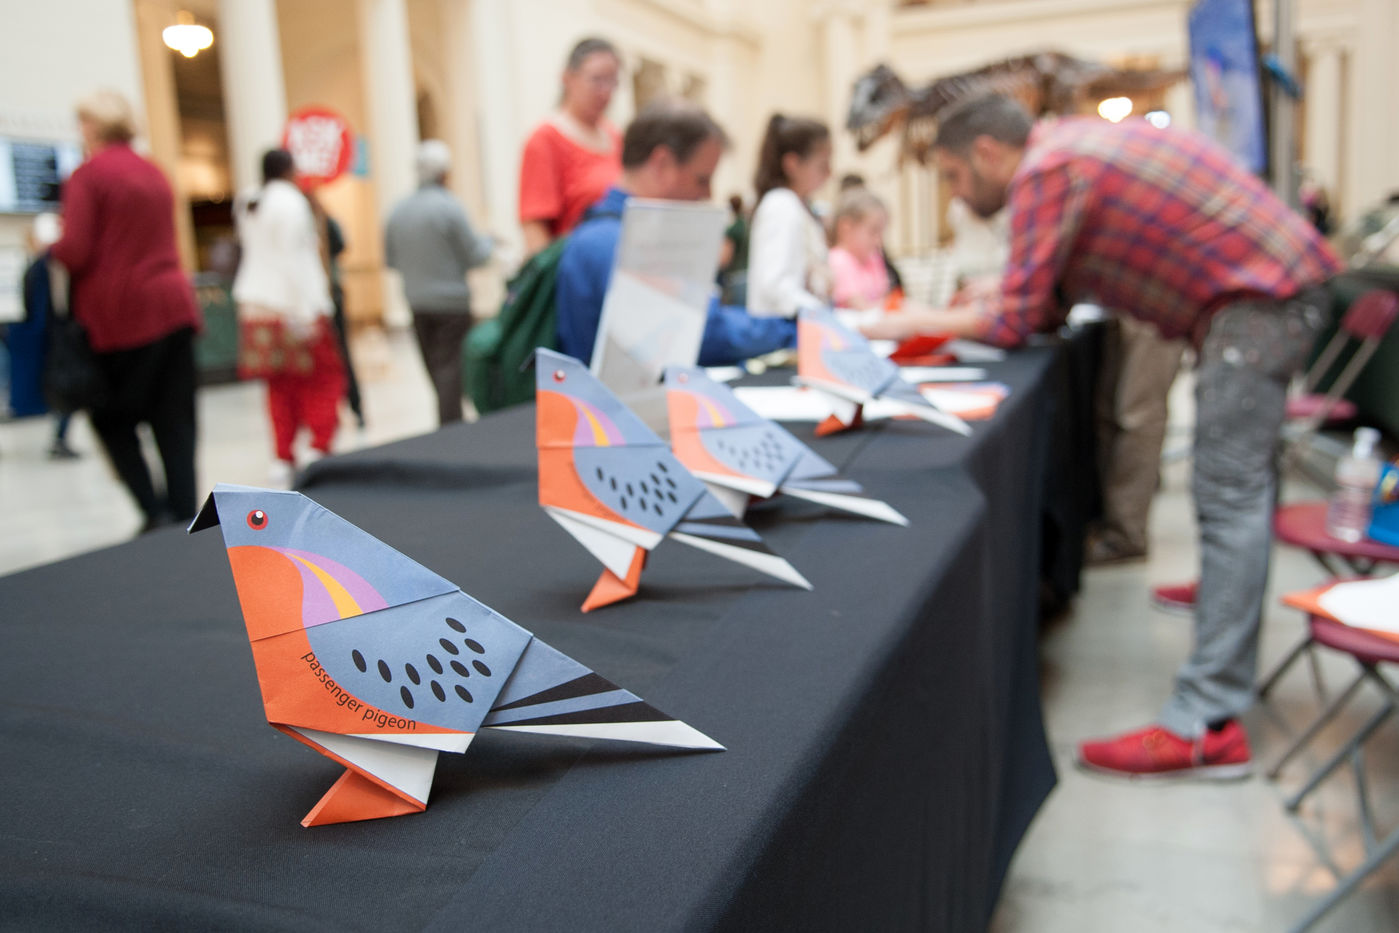 Four origami passenger pigeons rest on a table. In the background a museum staff member helps a visitor make one.